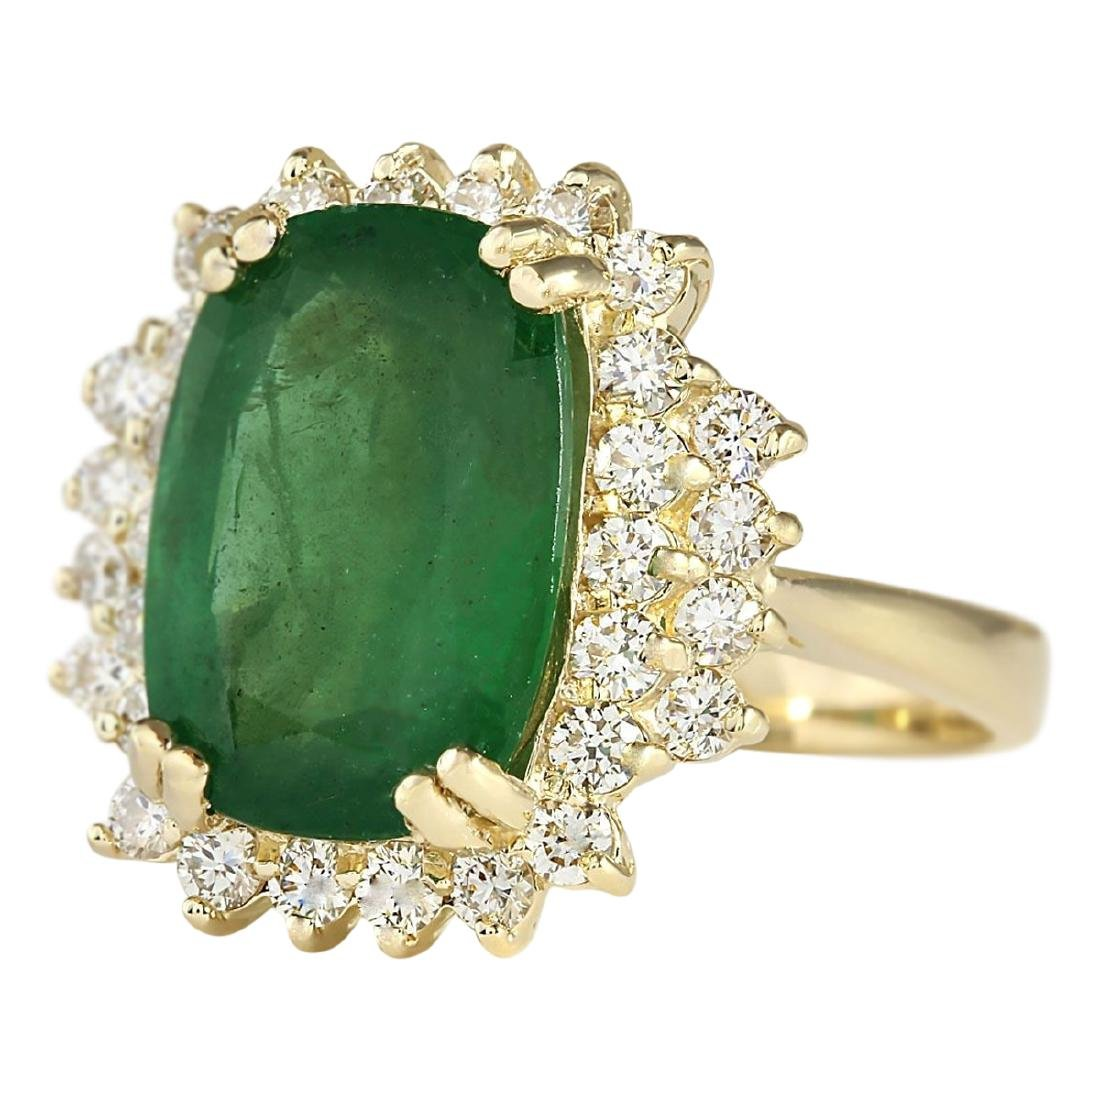 6.69 CTW Natural Emerald And Diamond Ring In 18K Yellow - 2